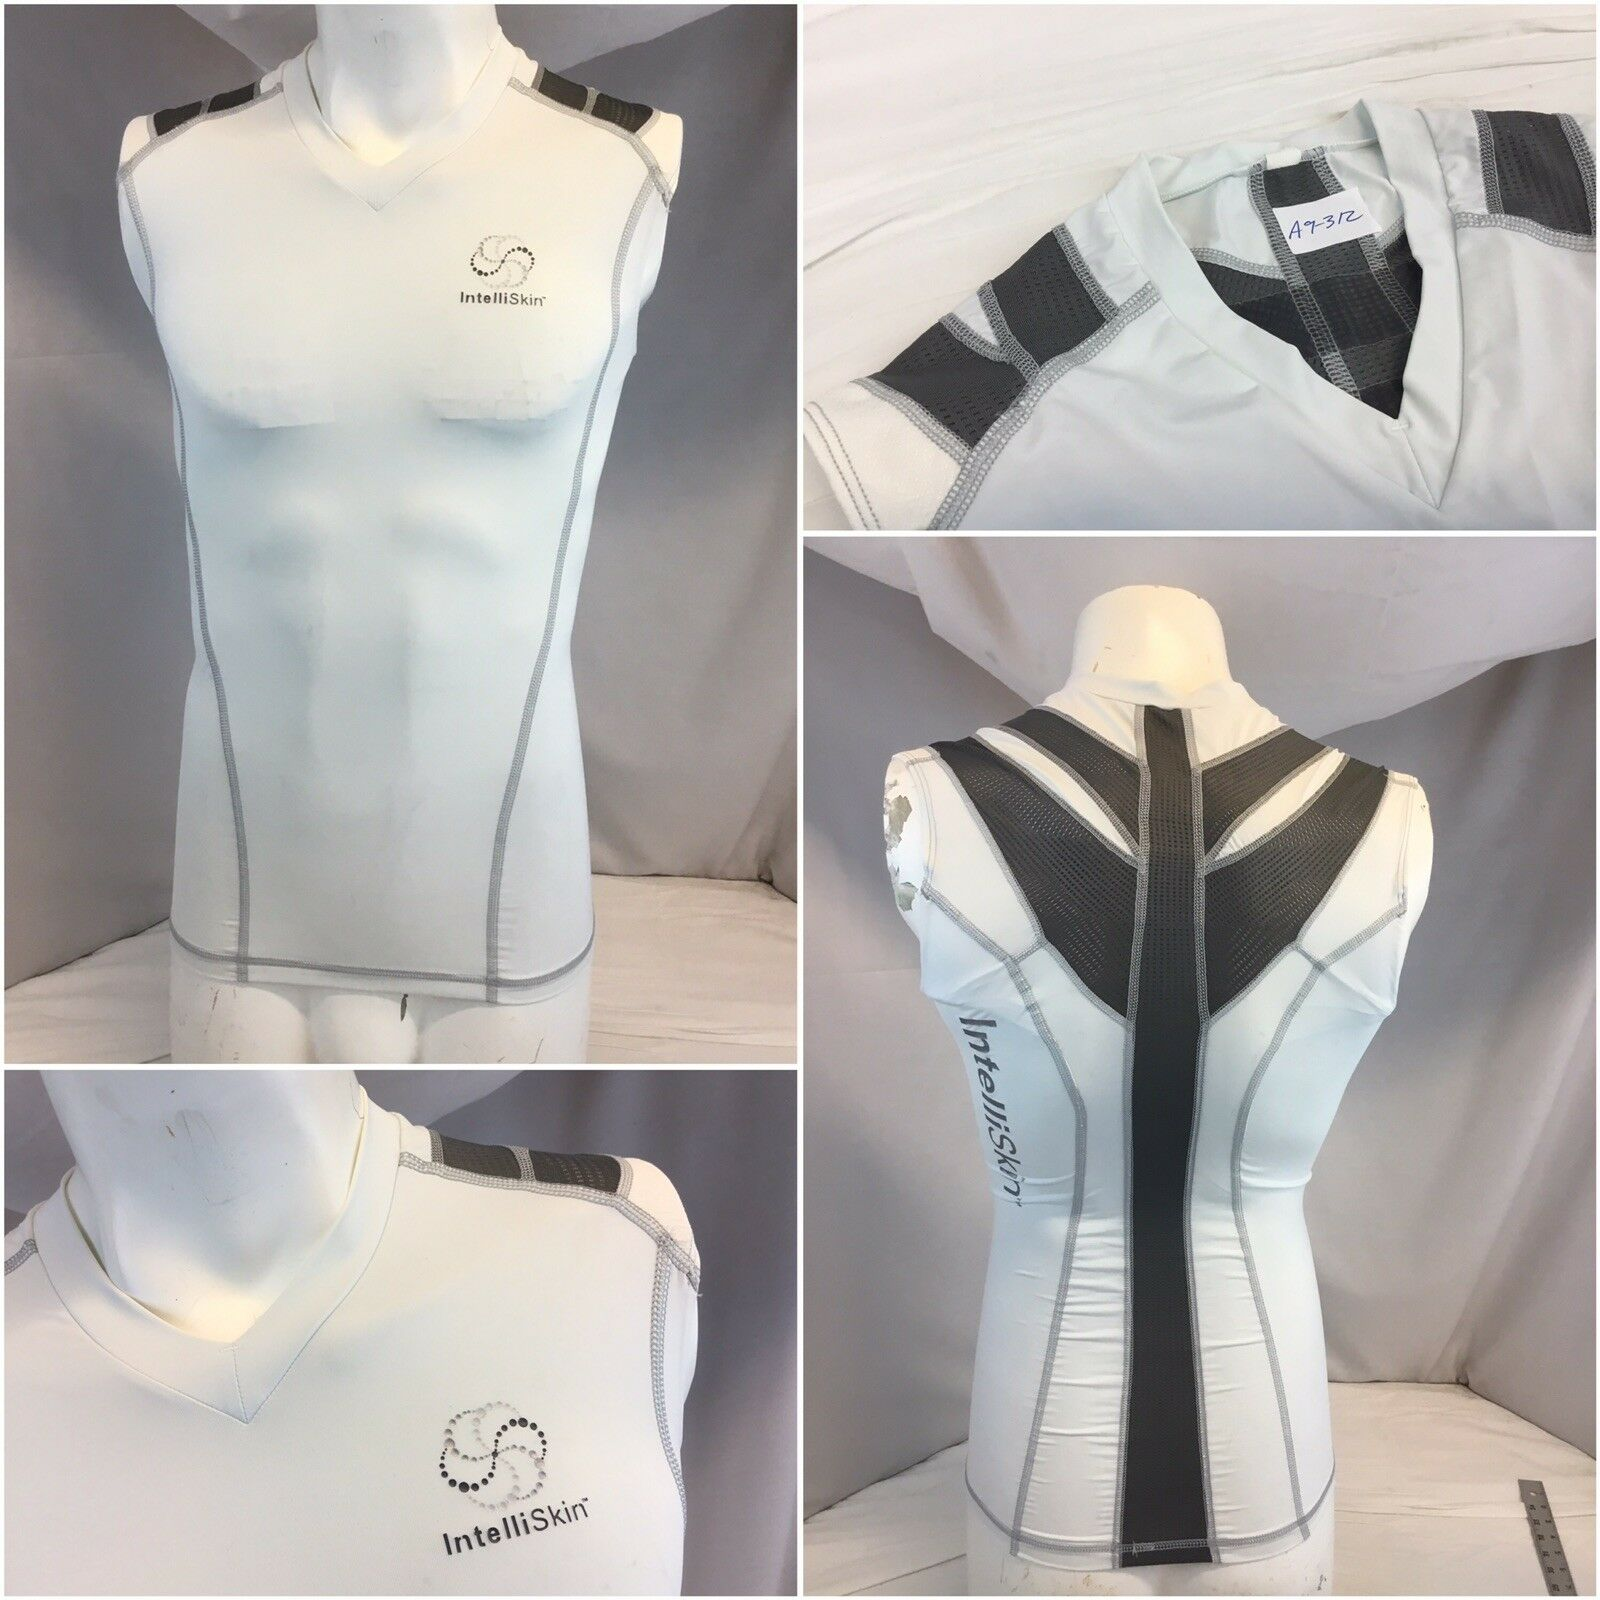 ItelliSkin Compression Shirt S Men White Sleeveless No Flaws  YGI A9-312